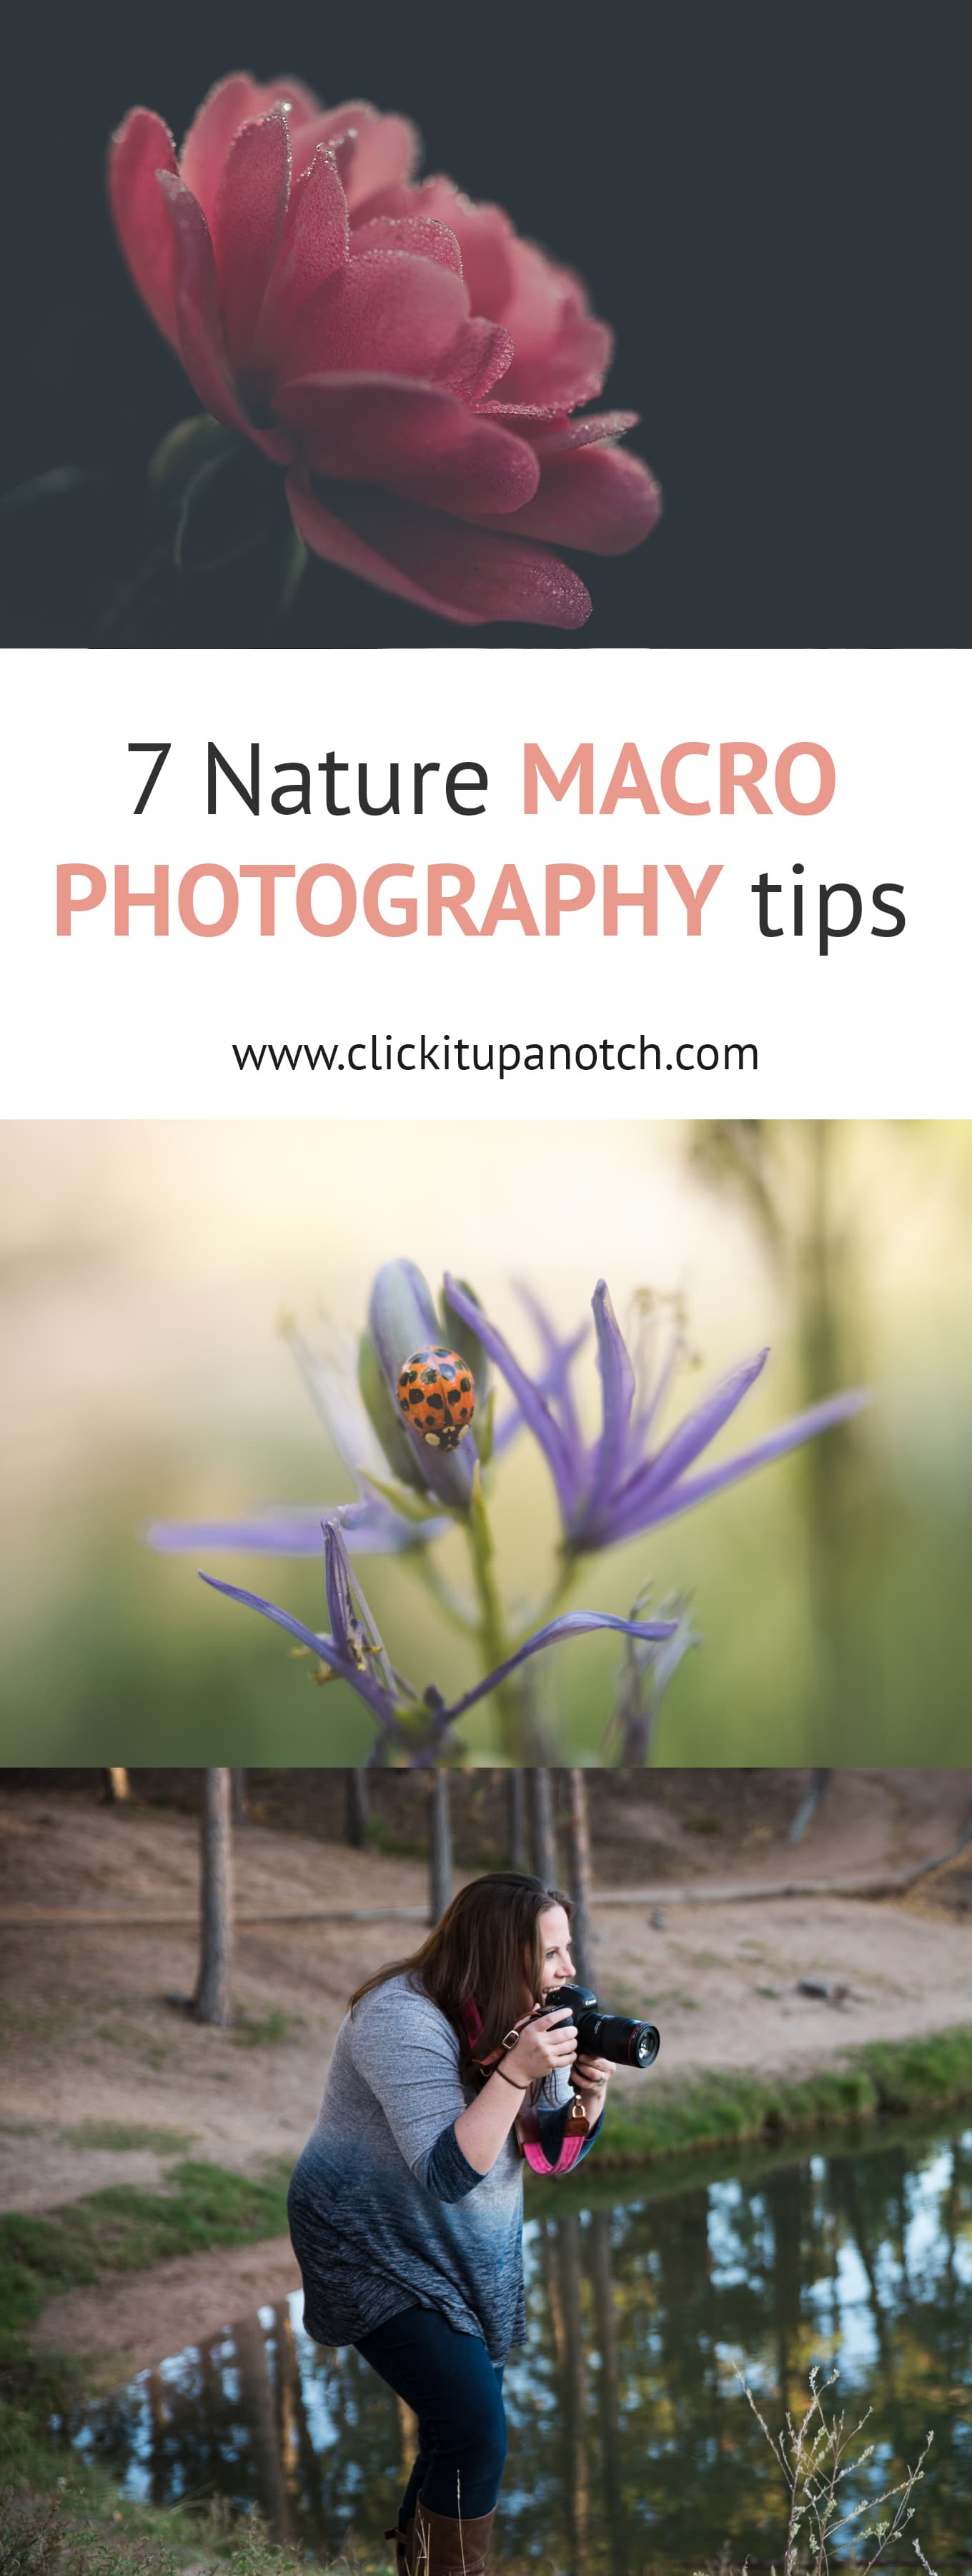 "Macro photography is hard enough indoors. Going to use these tips the next time I try macro photography outside! Read - ""7 Must Have Nature Photography Tips"""